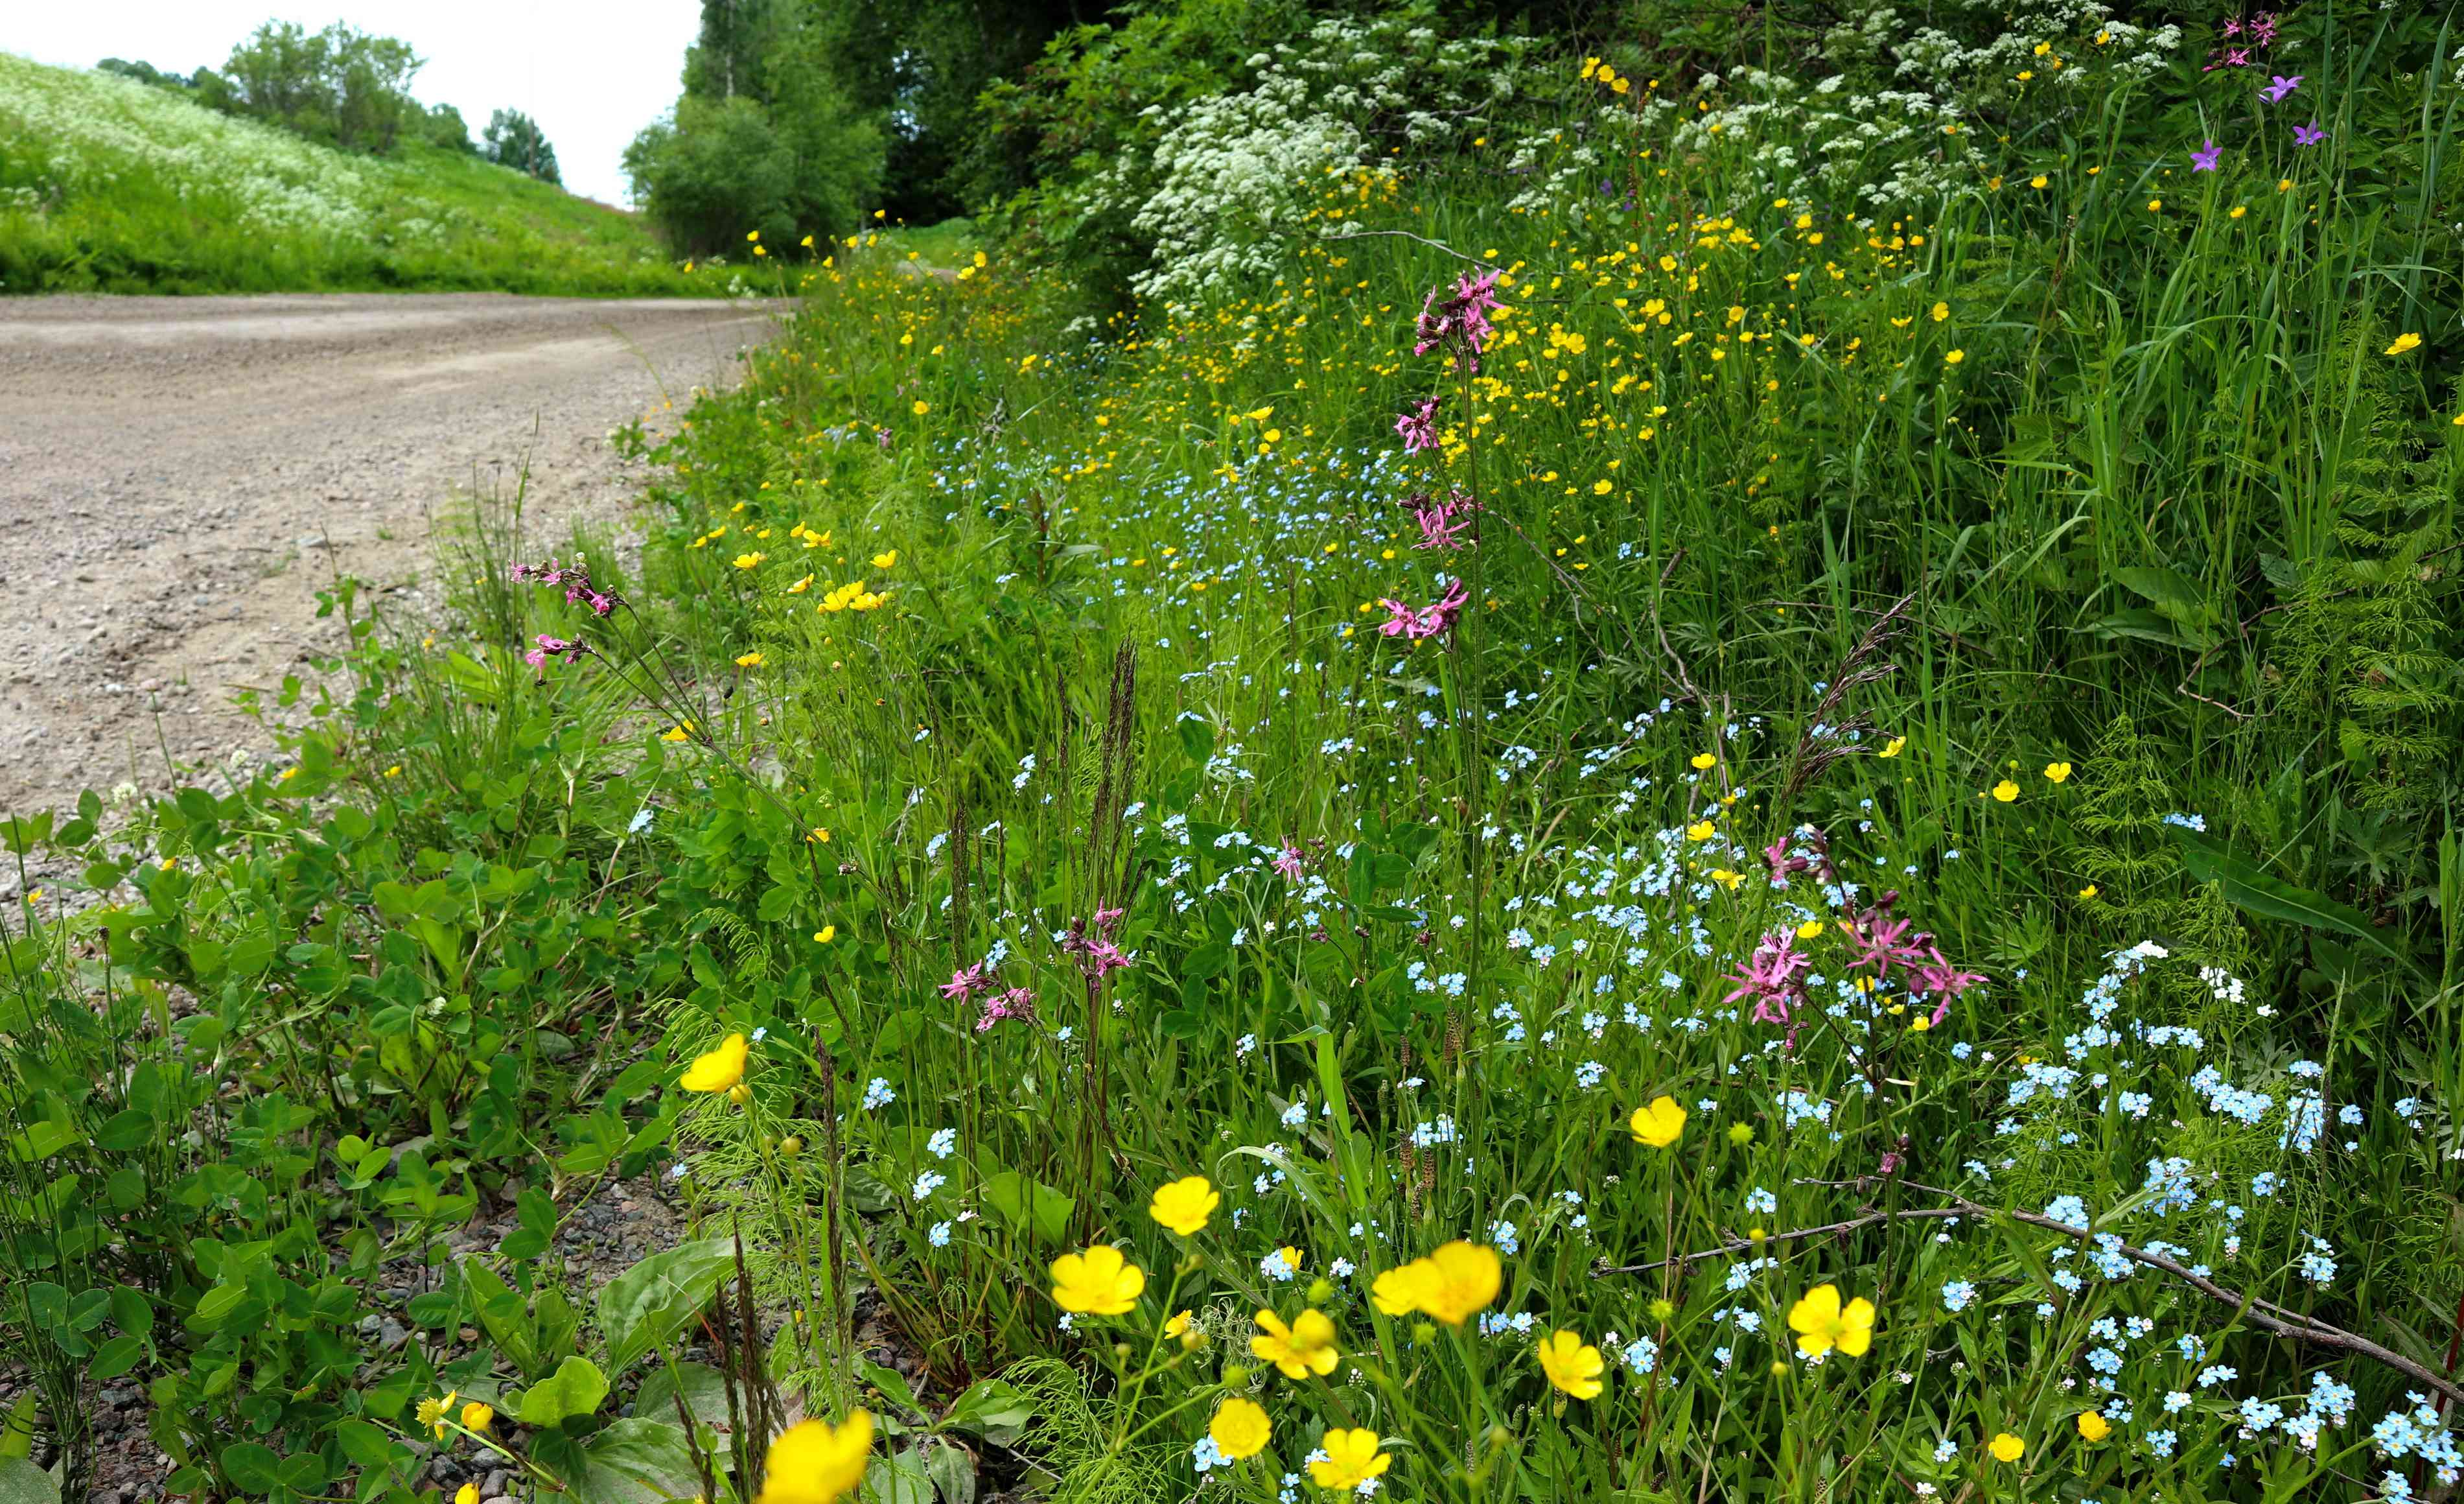 highway right of way with wildflowers